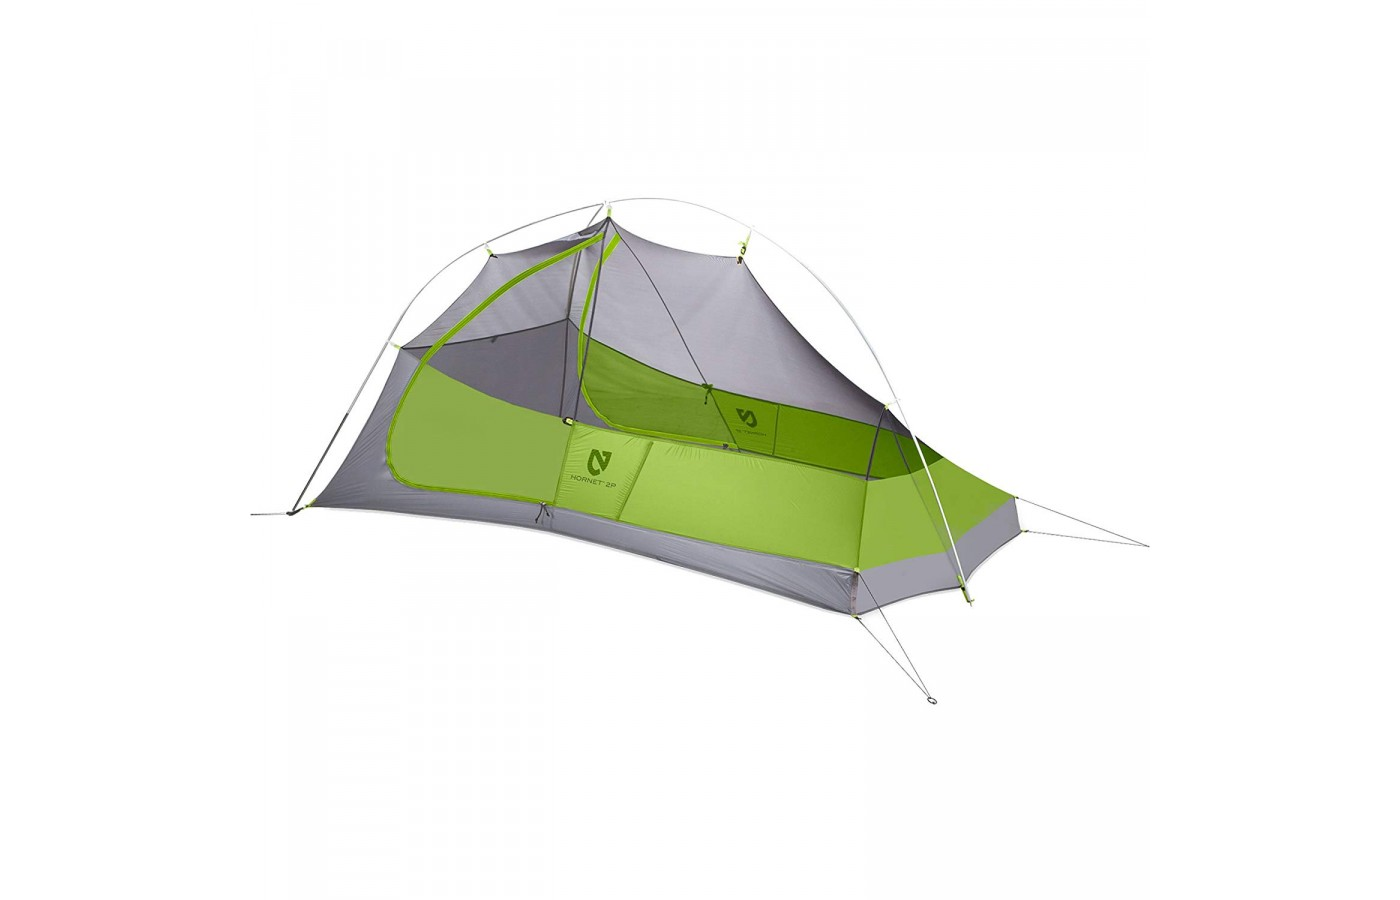 The Nemo Hornet 2P is ultra-lightweight making it ideal for backpacking.